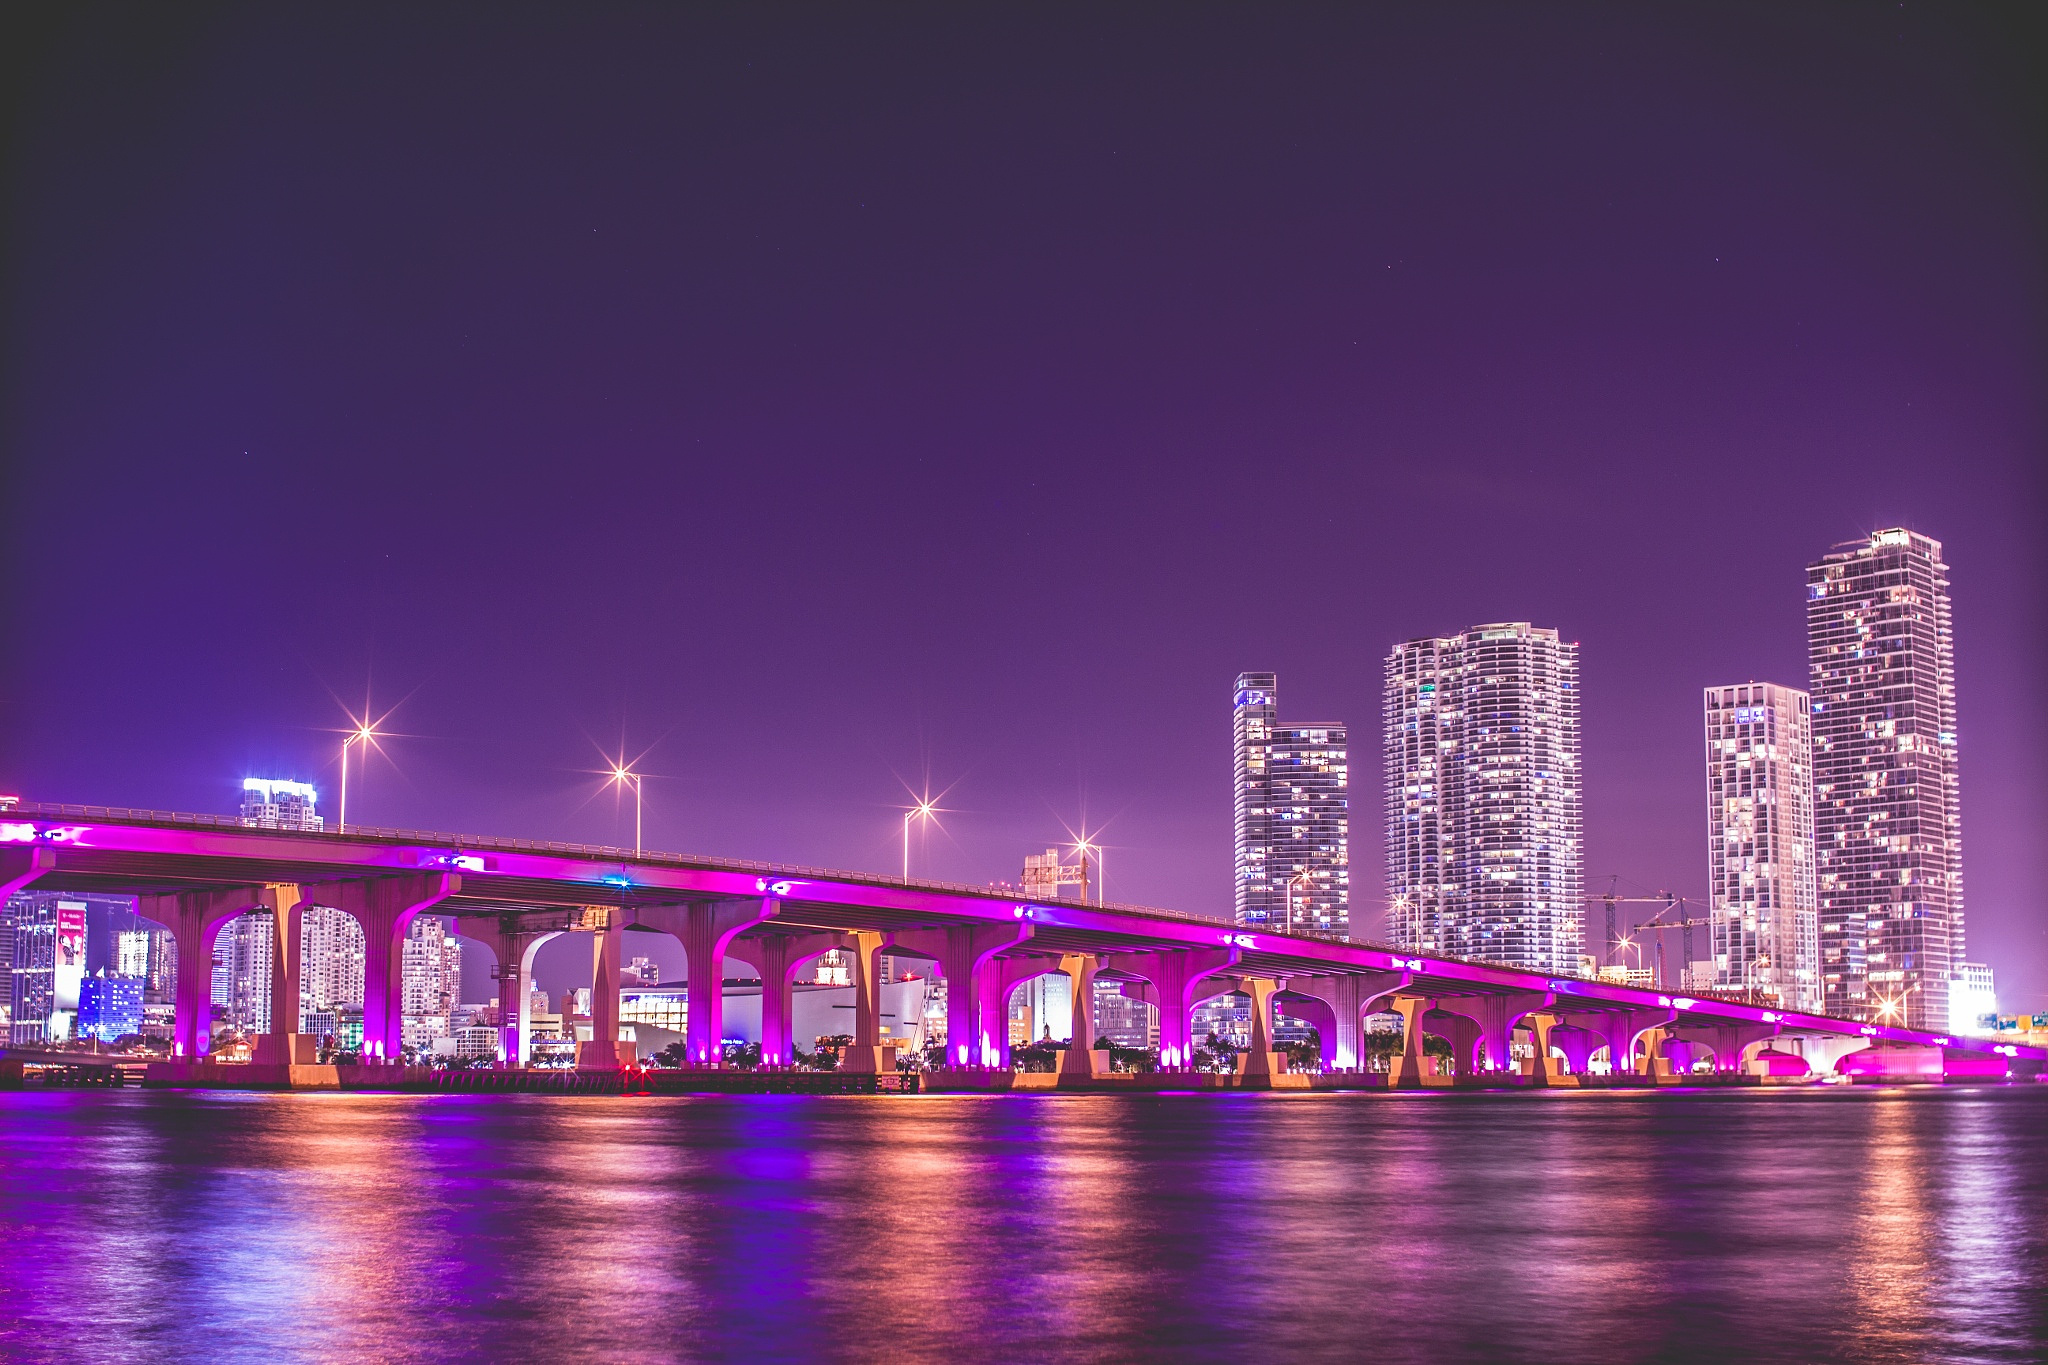 Free Download Miami Wallpapers The City Skyline Across The Beach 2048x1365 For Your Desktop Mobile Tablet Explore 72 Miami Desktop Wallpaper Miami Heat Desktop Wallpaper University Of Miami Wallpaper